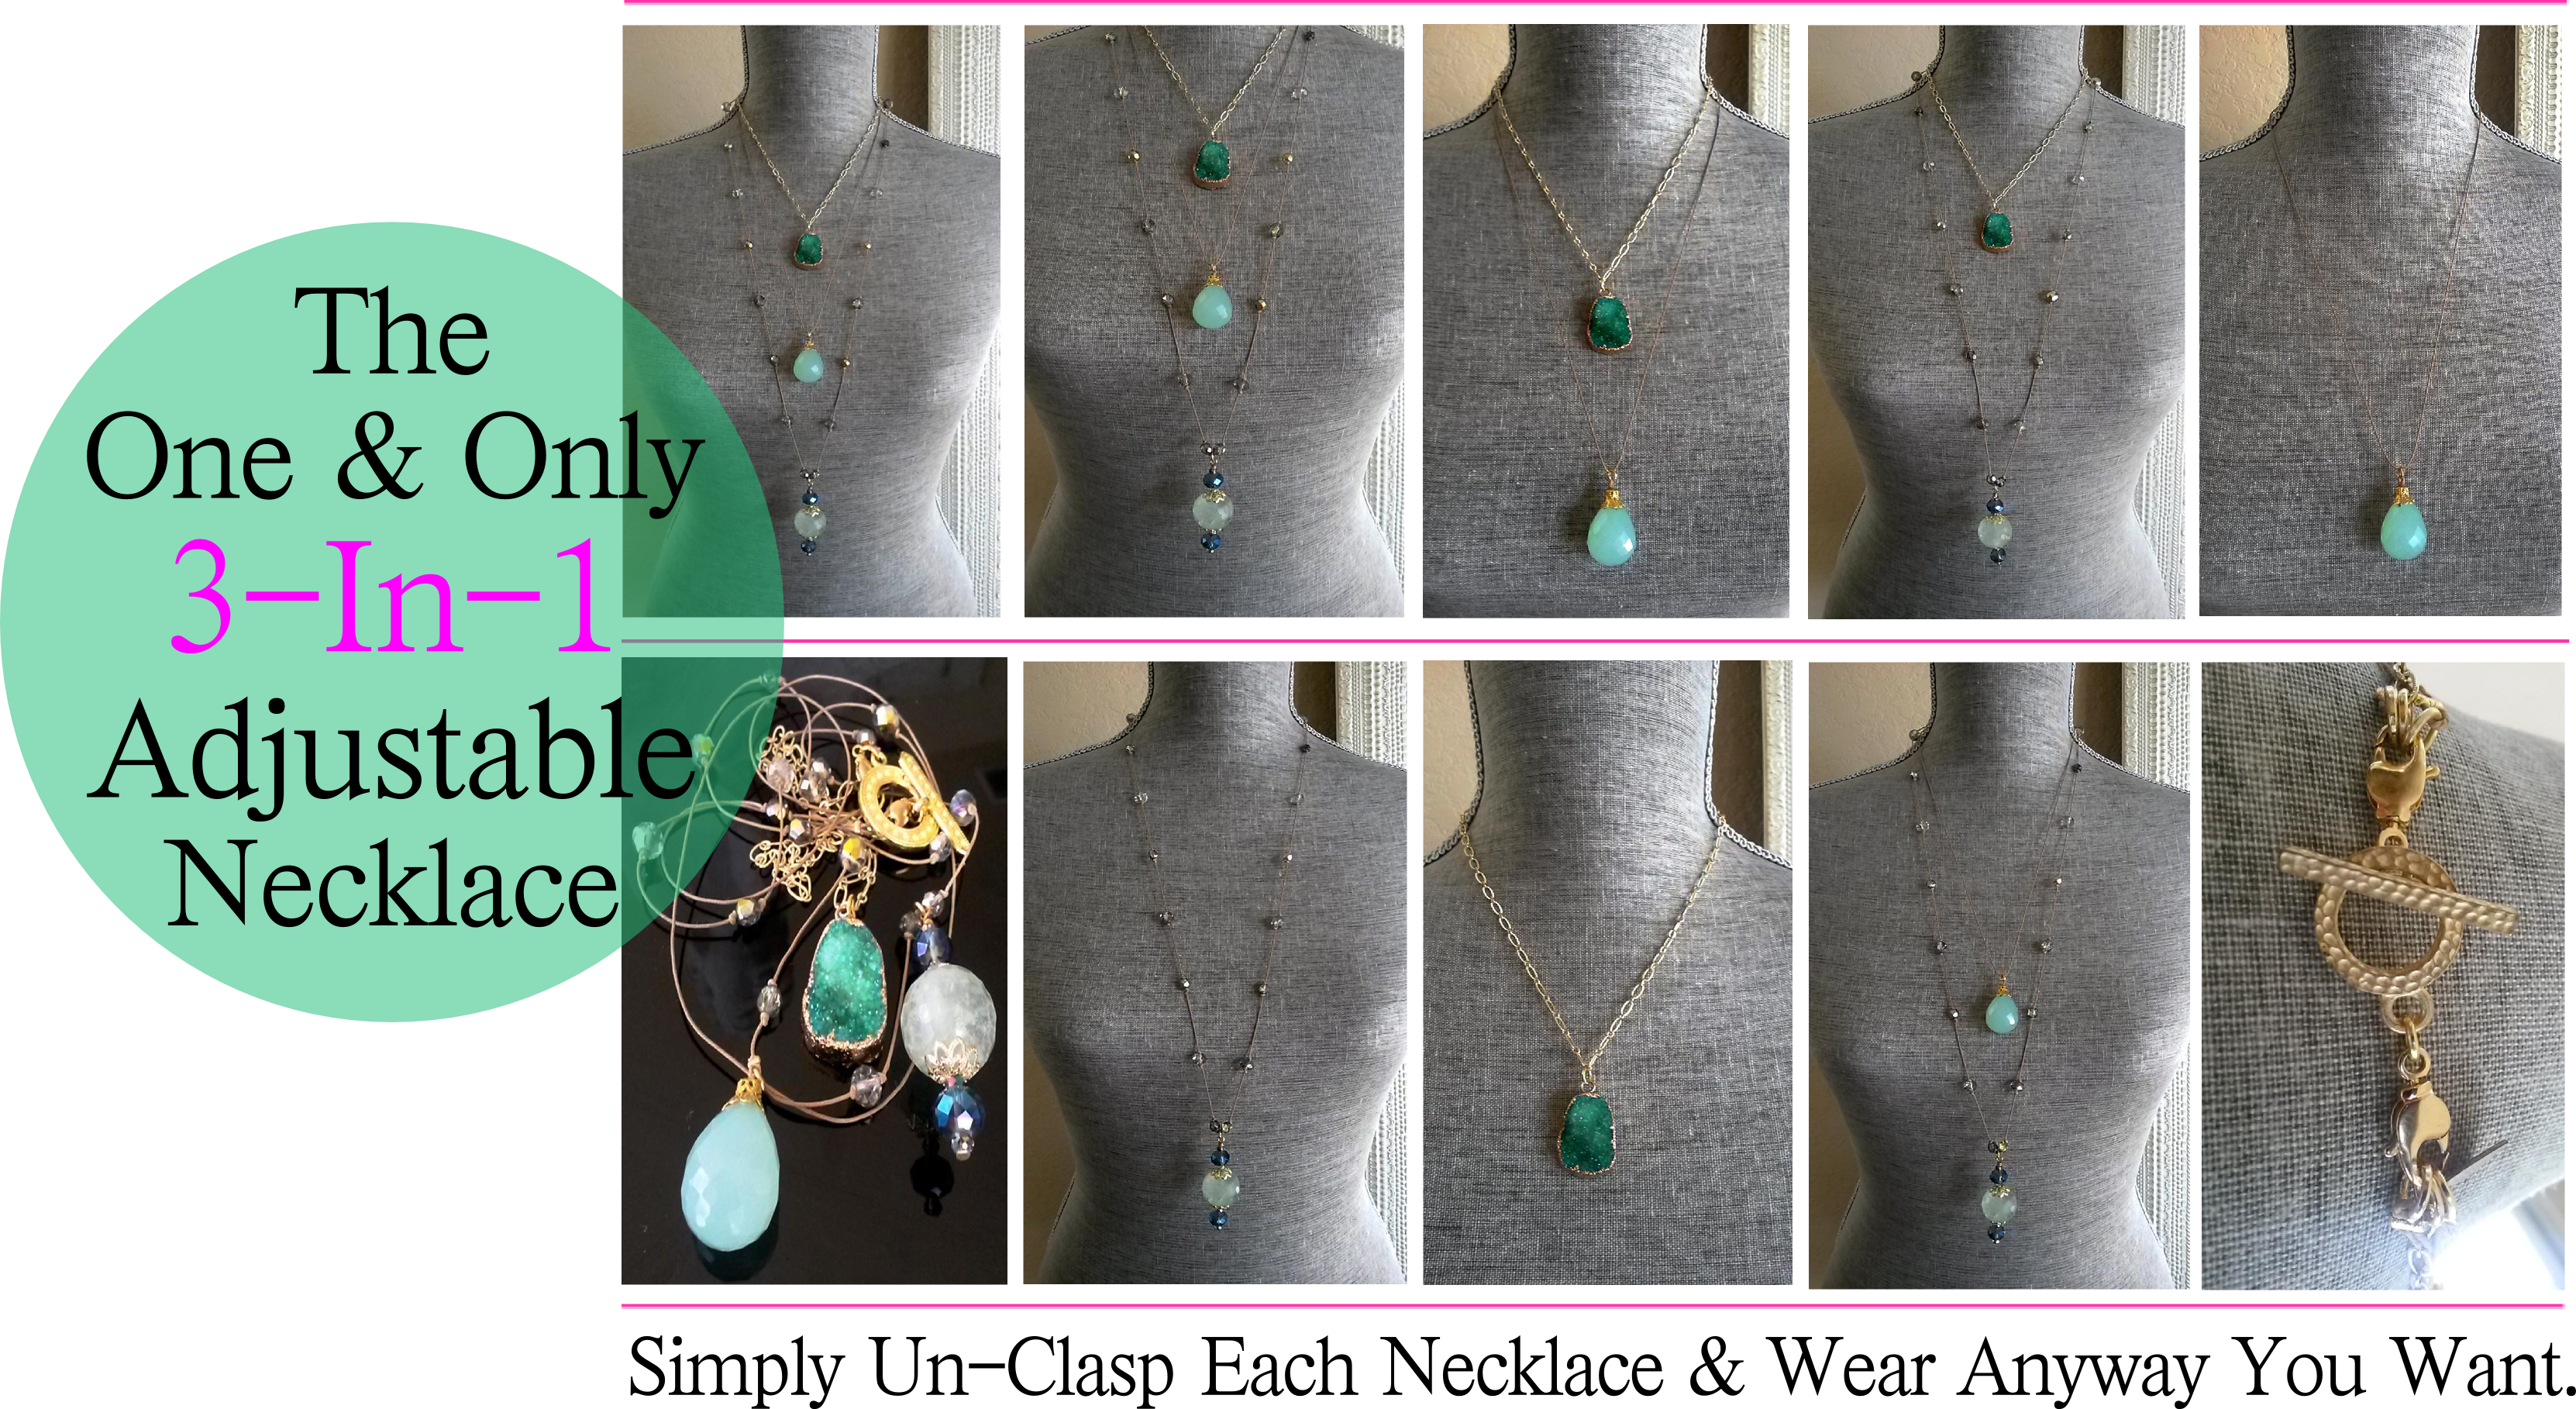 The One & Only 3-In-1 Wrap Adjustable Necklace